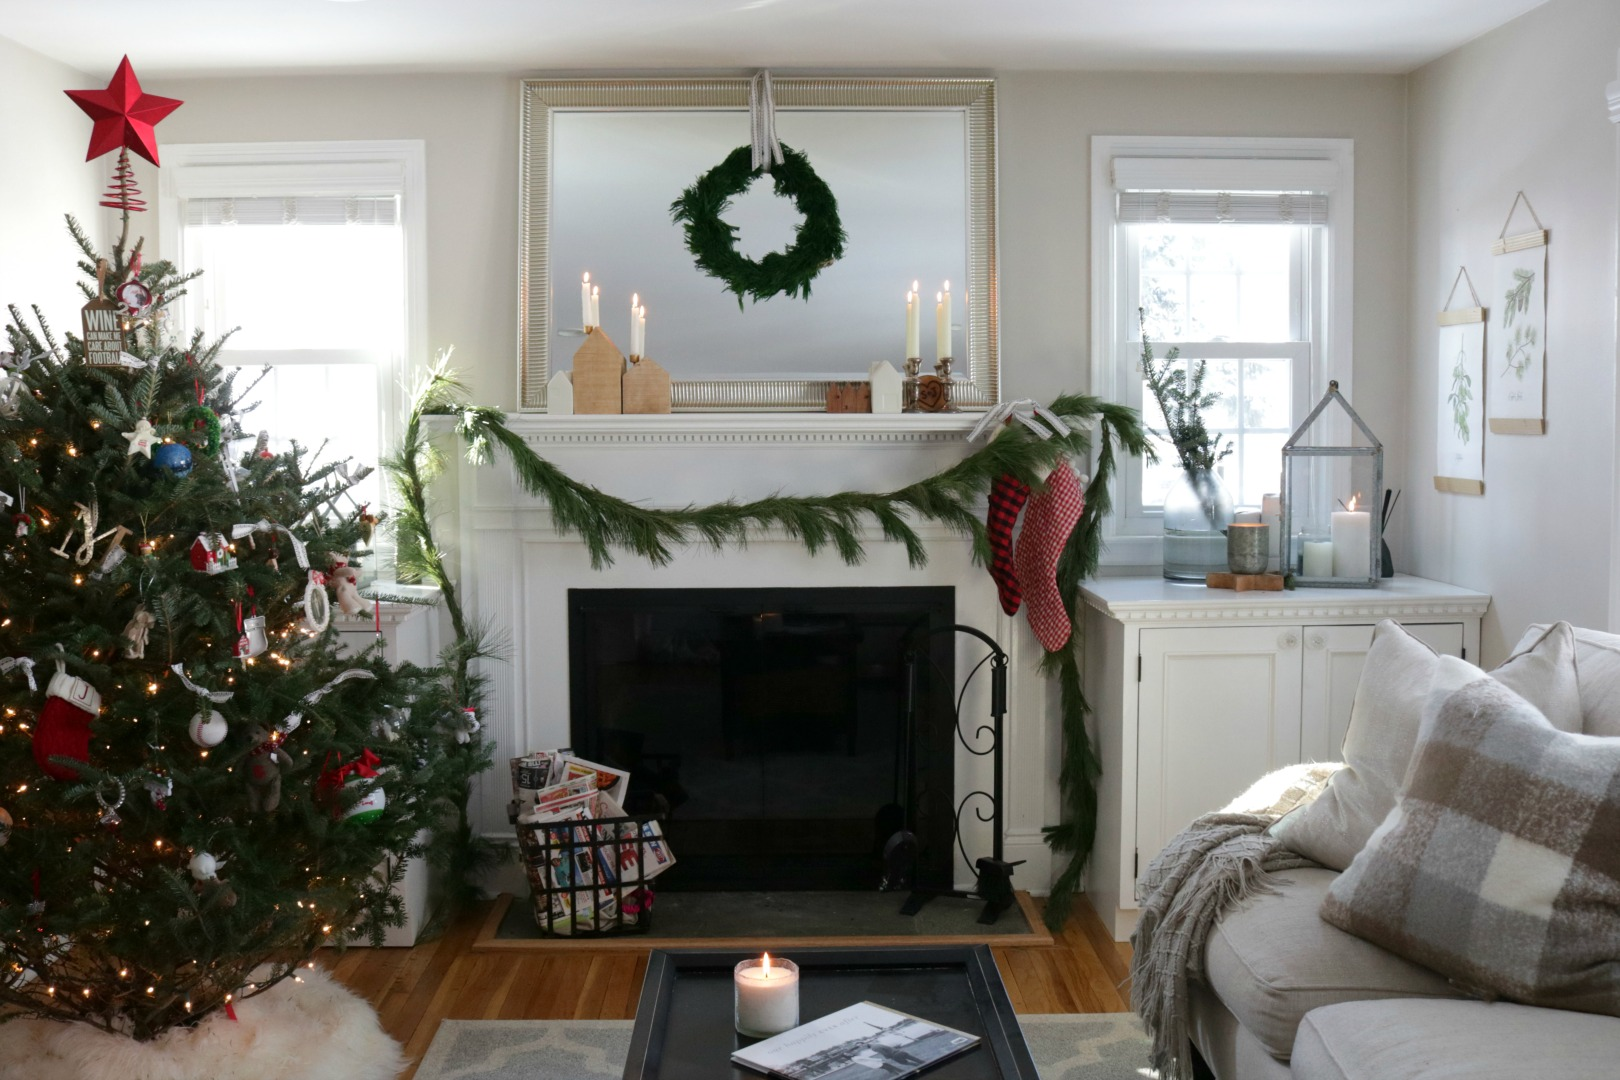 Christmas Mantel Ideas- Before and After